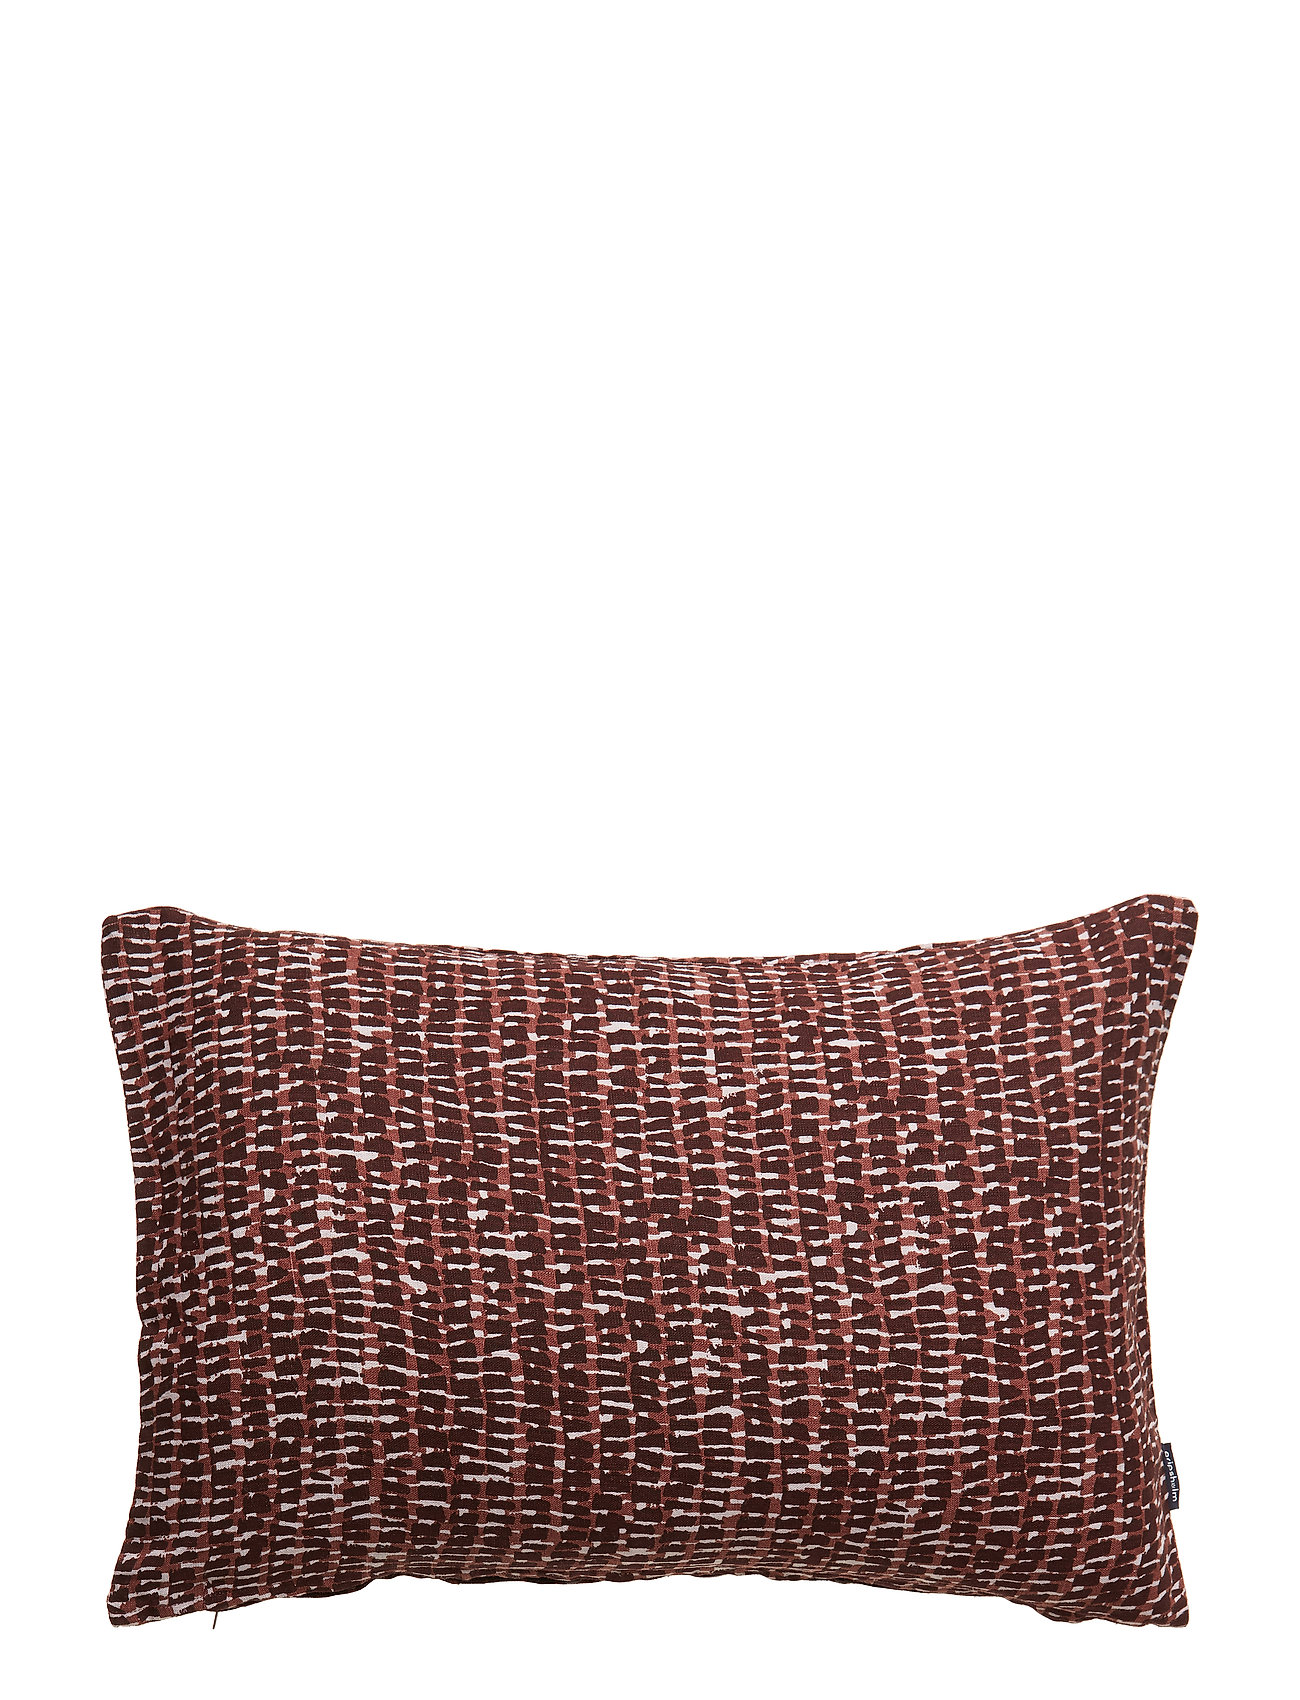 Gripsholm CUSHION COVER MIKA - WINE